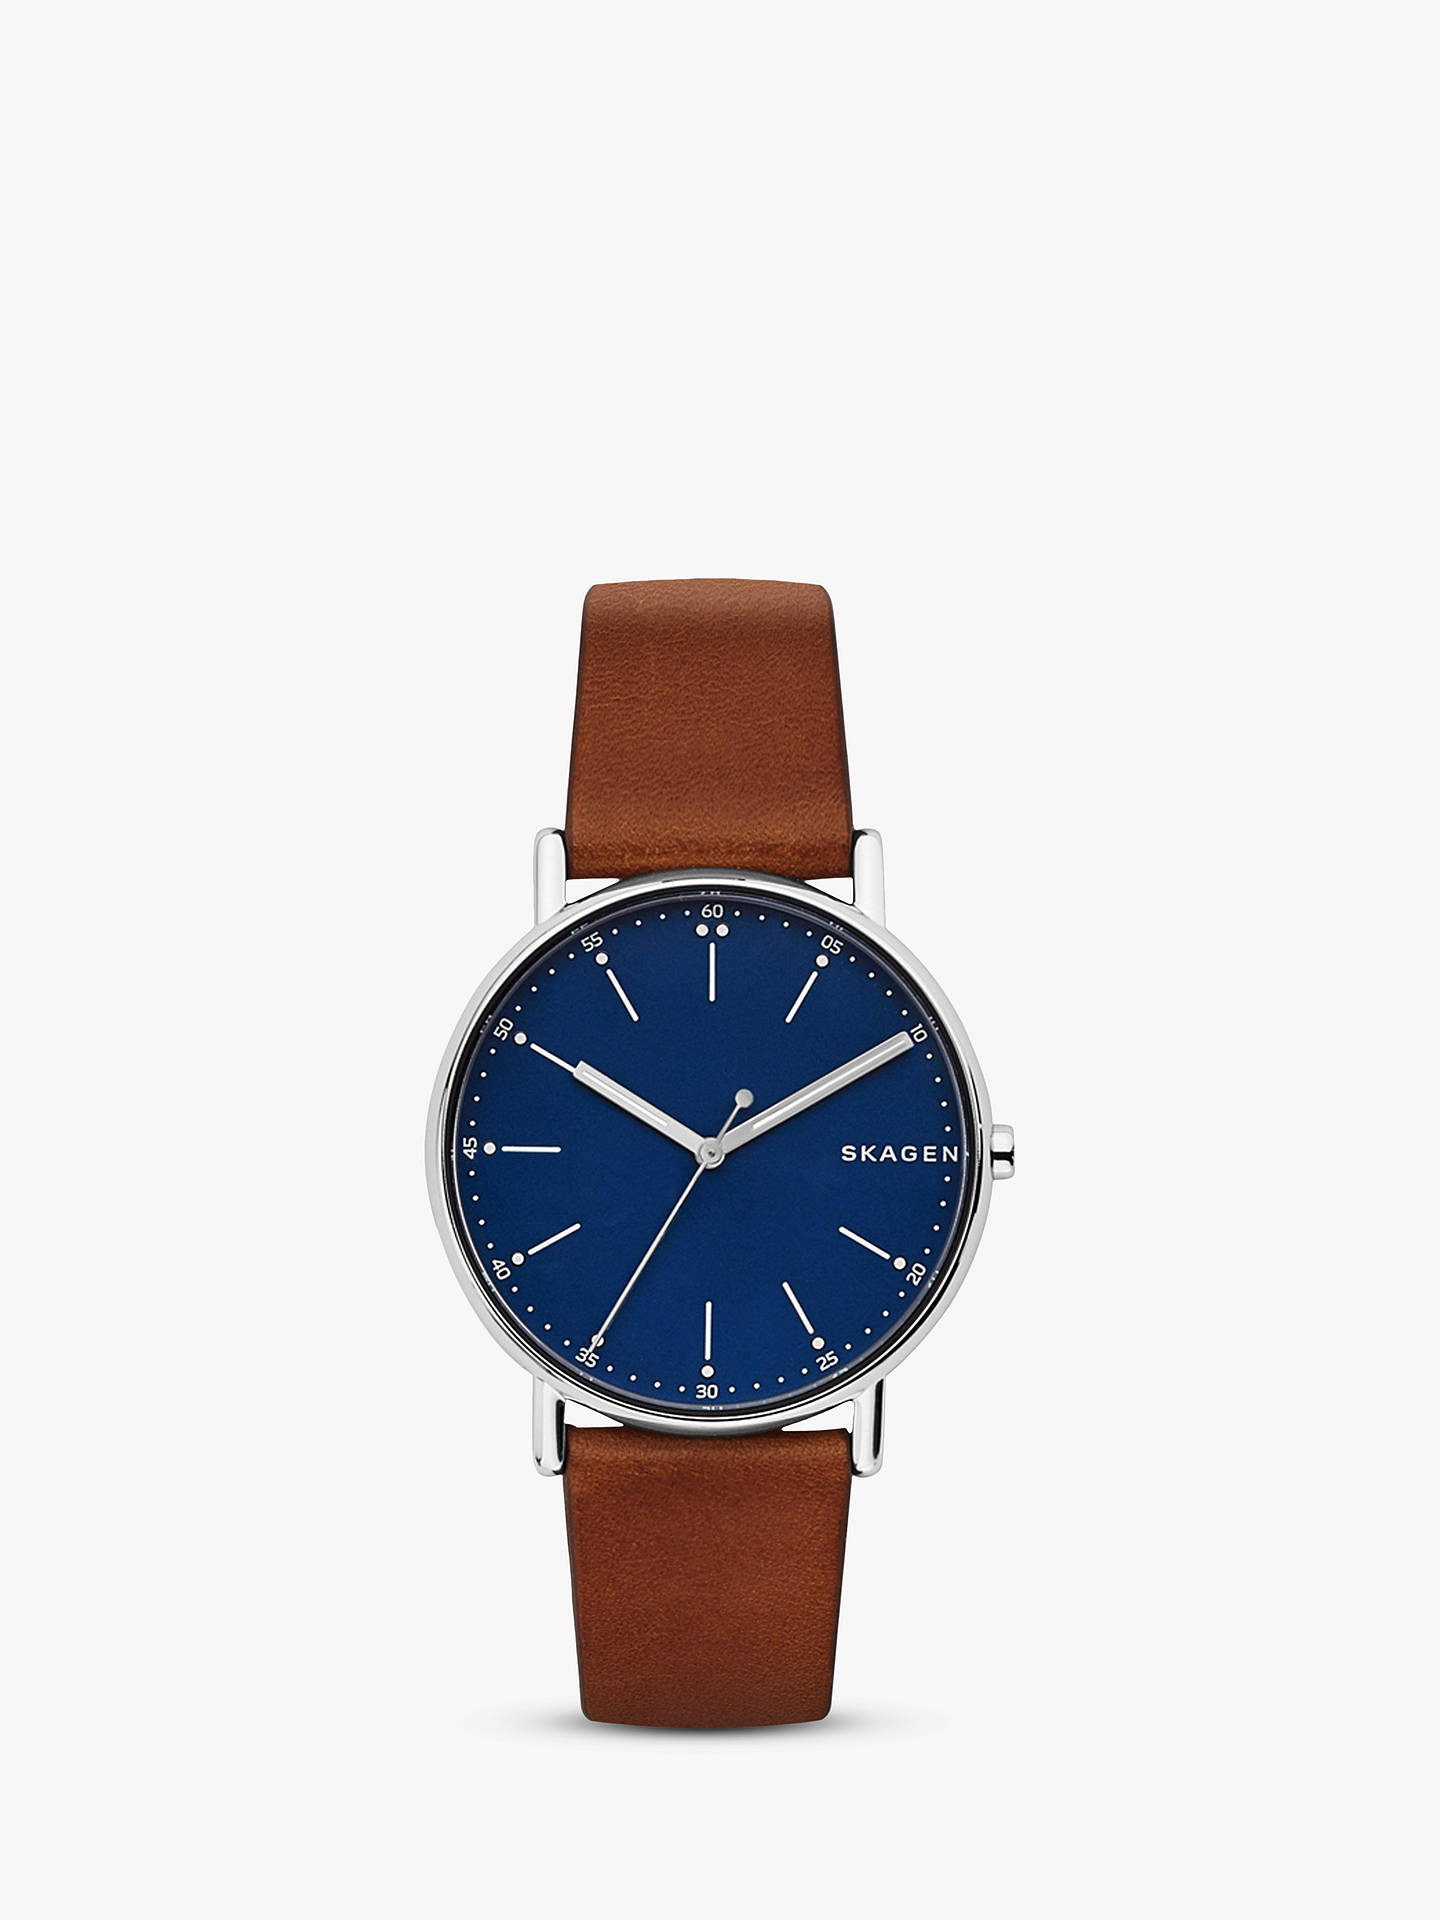 8d45ba50933 Skagen Men s Signatur Leather Strap Watch at John Lewis   Partners